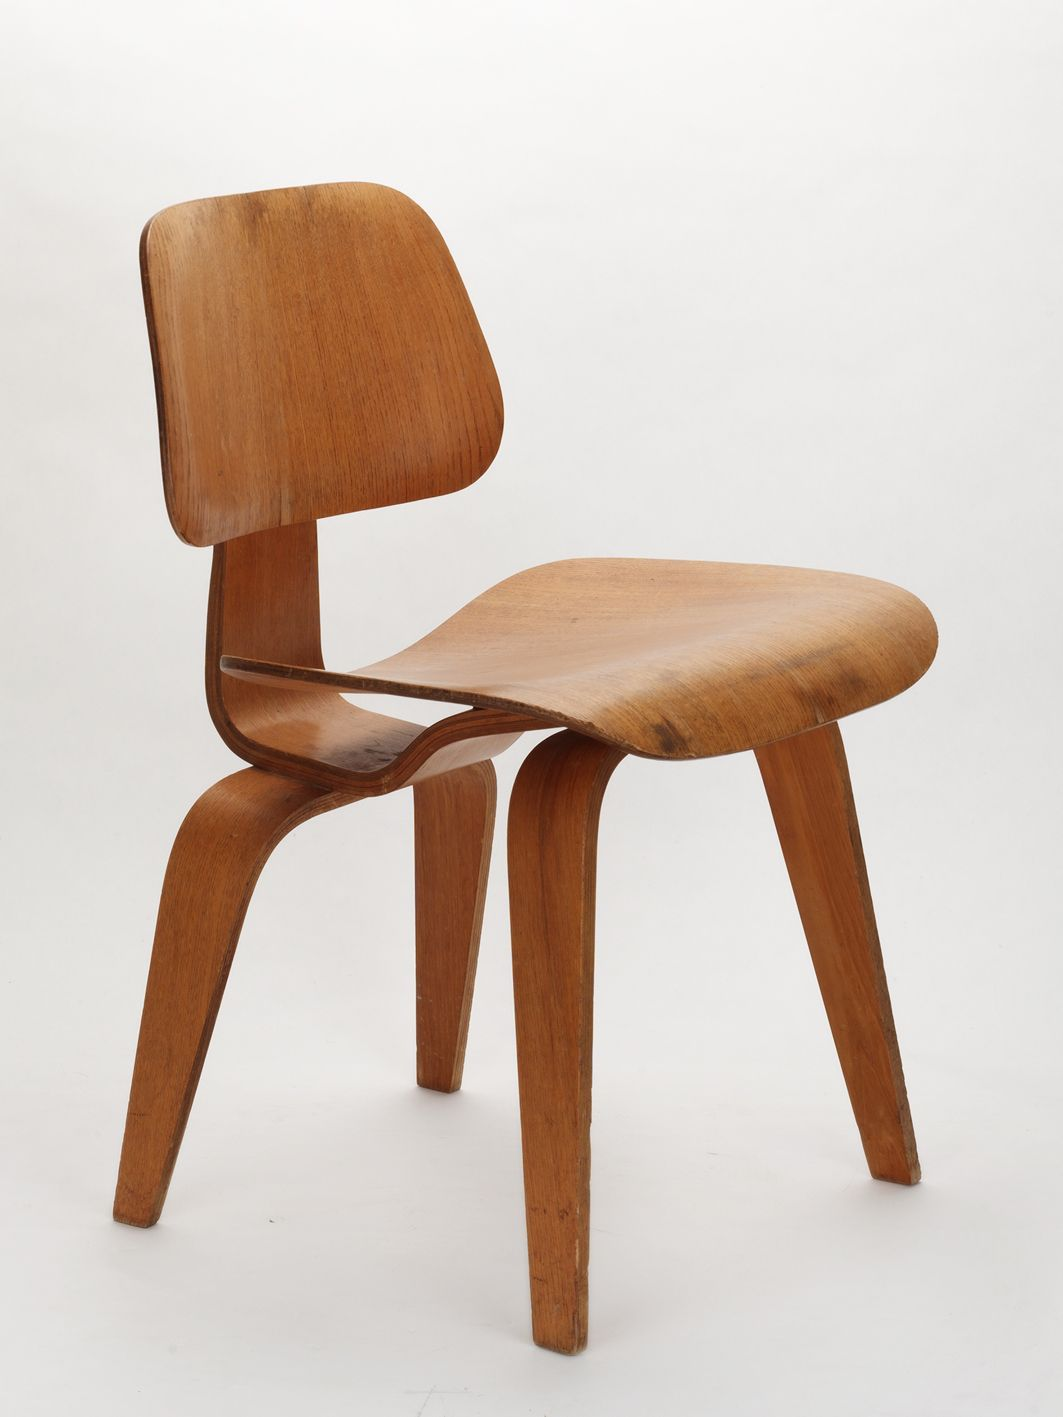 Charles & Ray Eames Sessel Charles Ray Eames Dcw Dining Chair Wood 1946 1 Serie